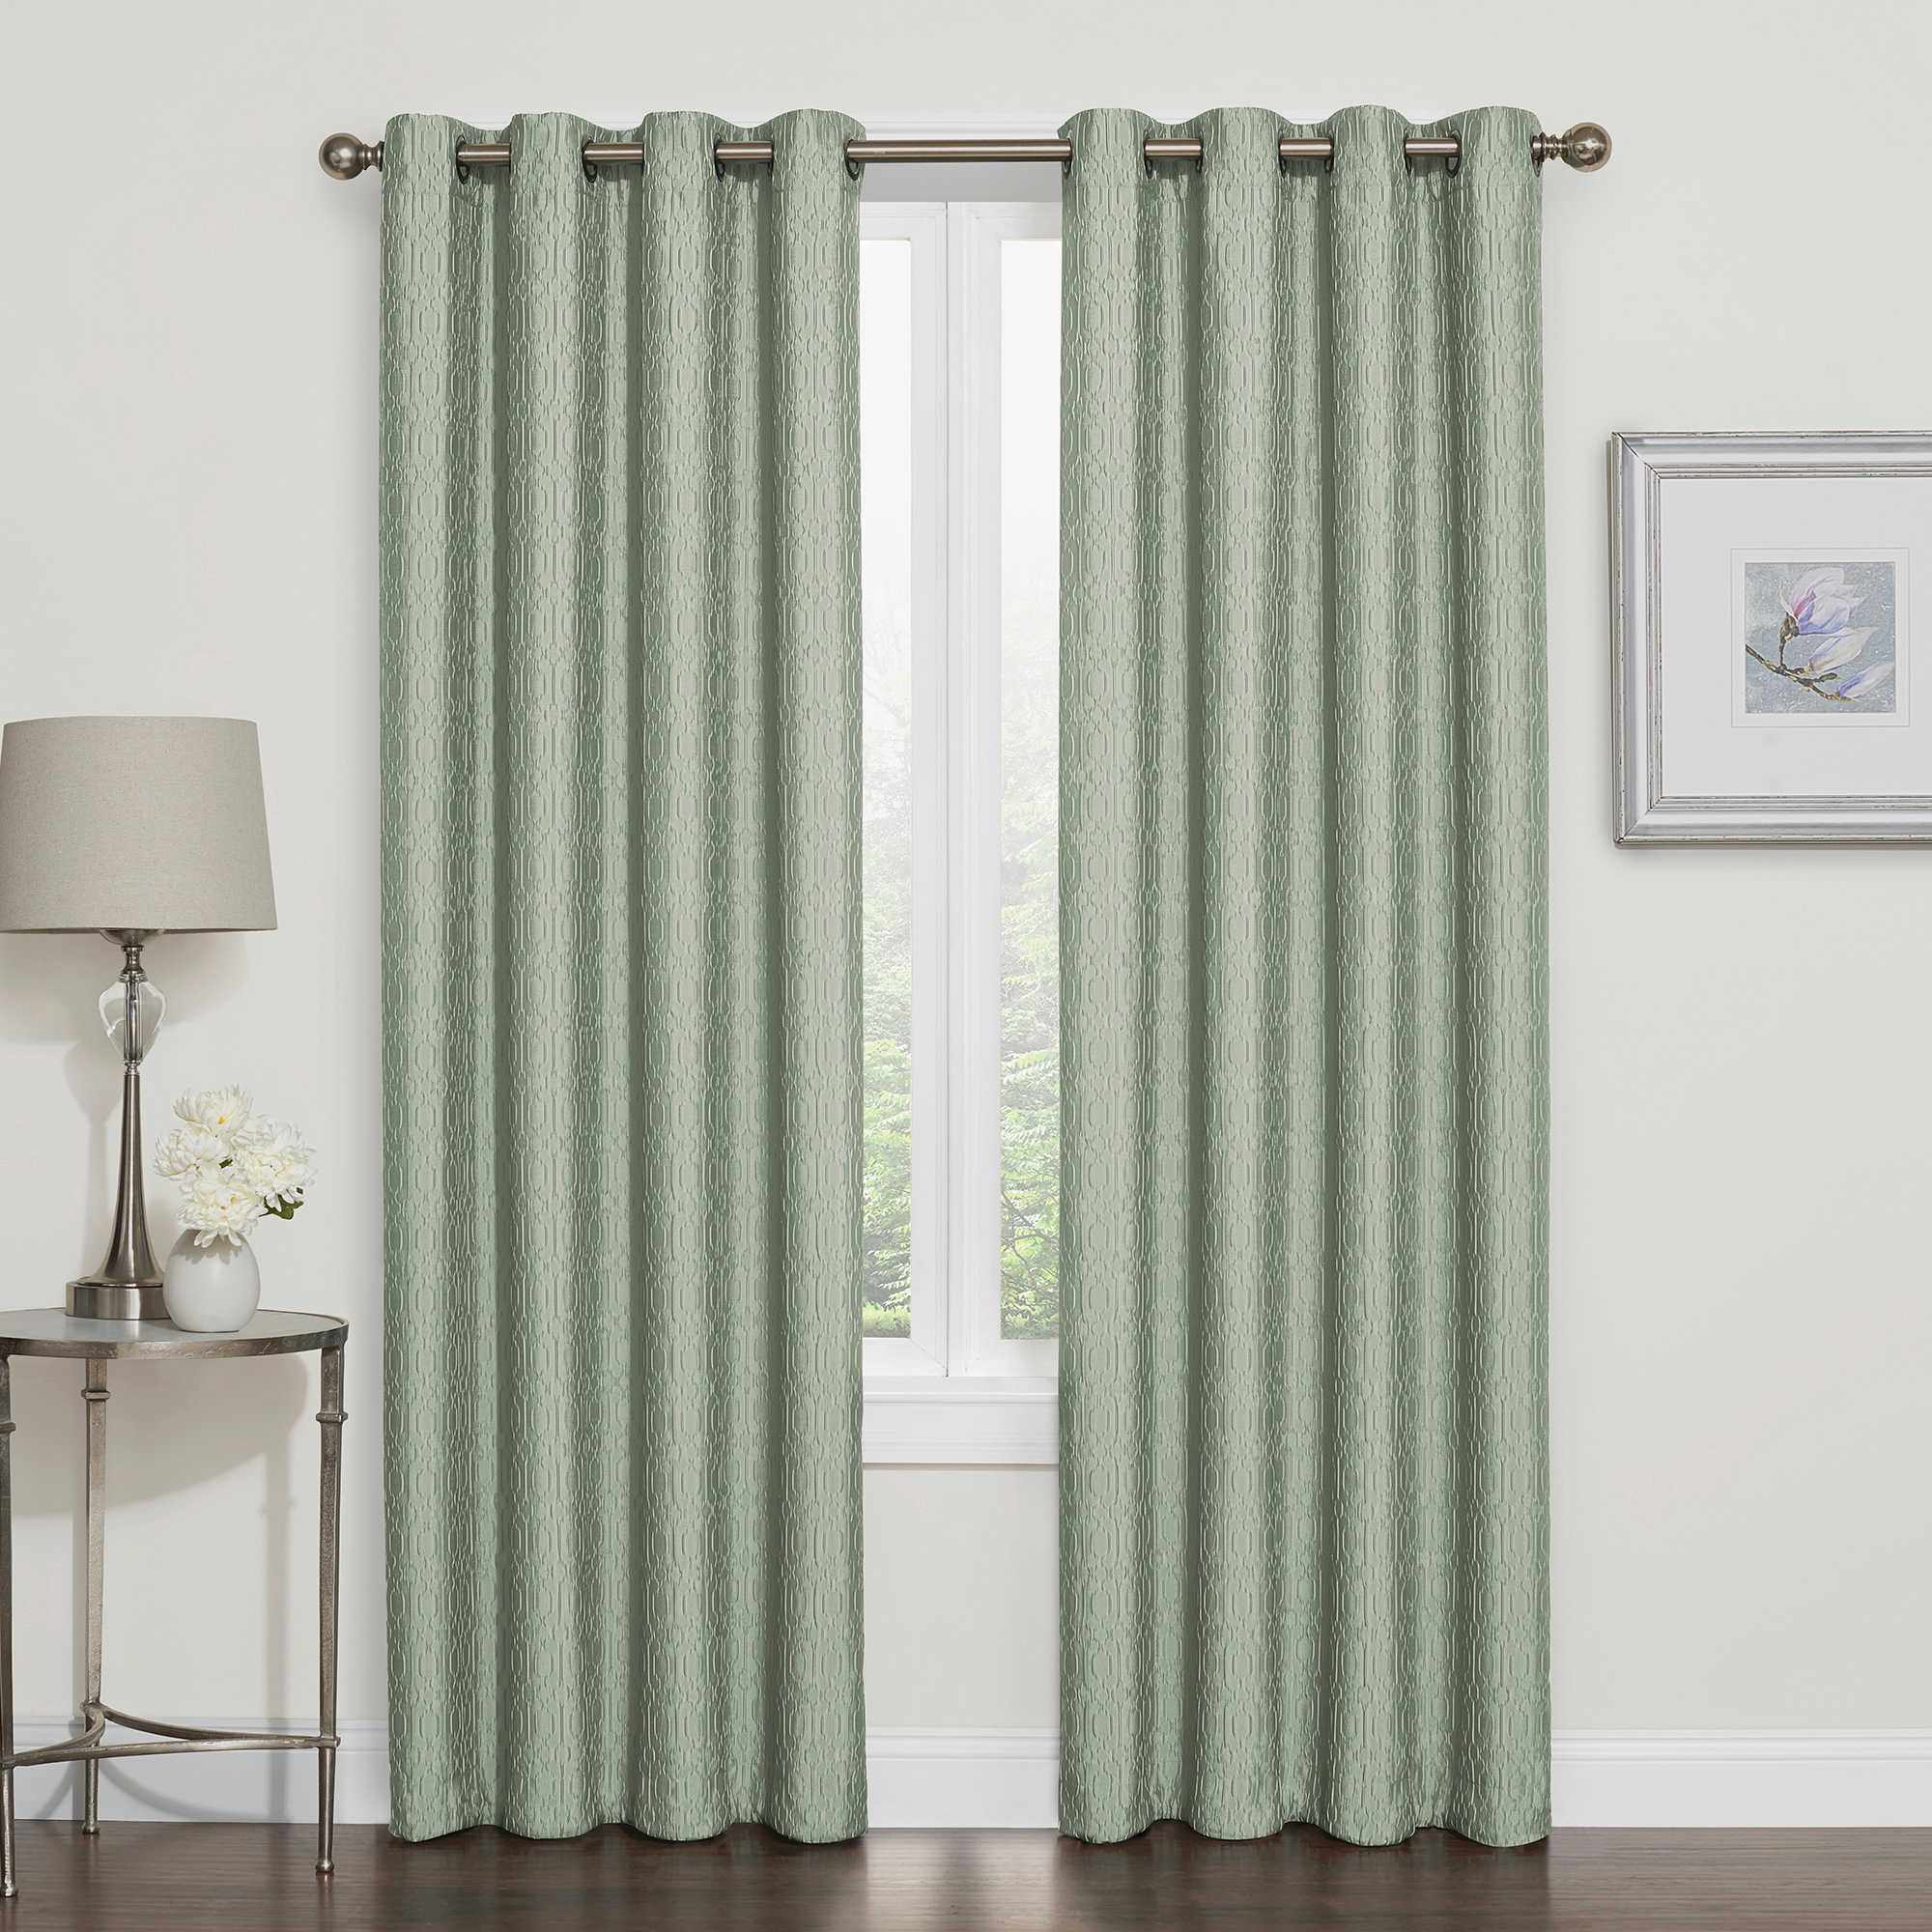 window boutique no dgn fancy single product eyelet african curtain new